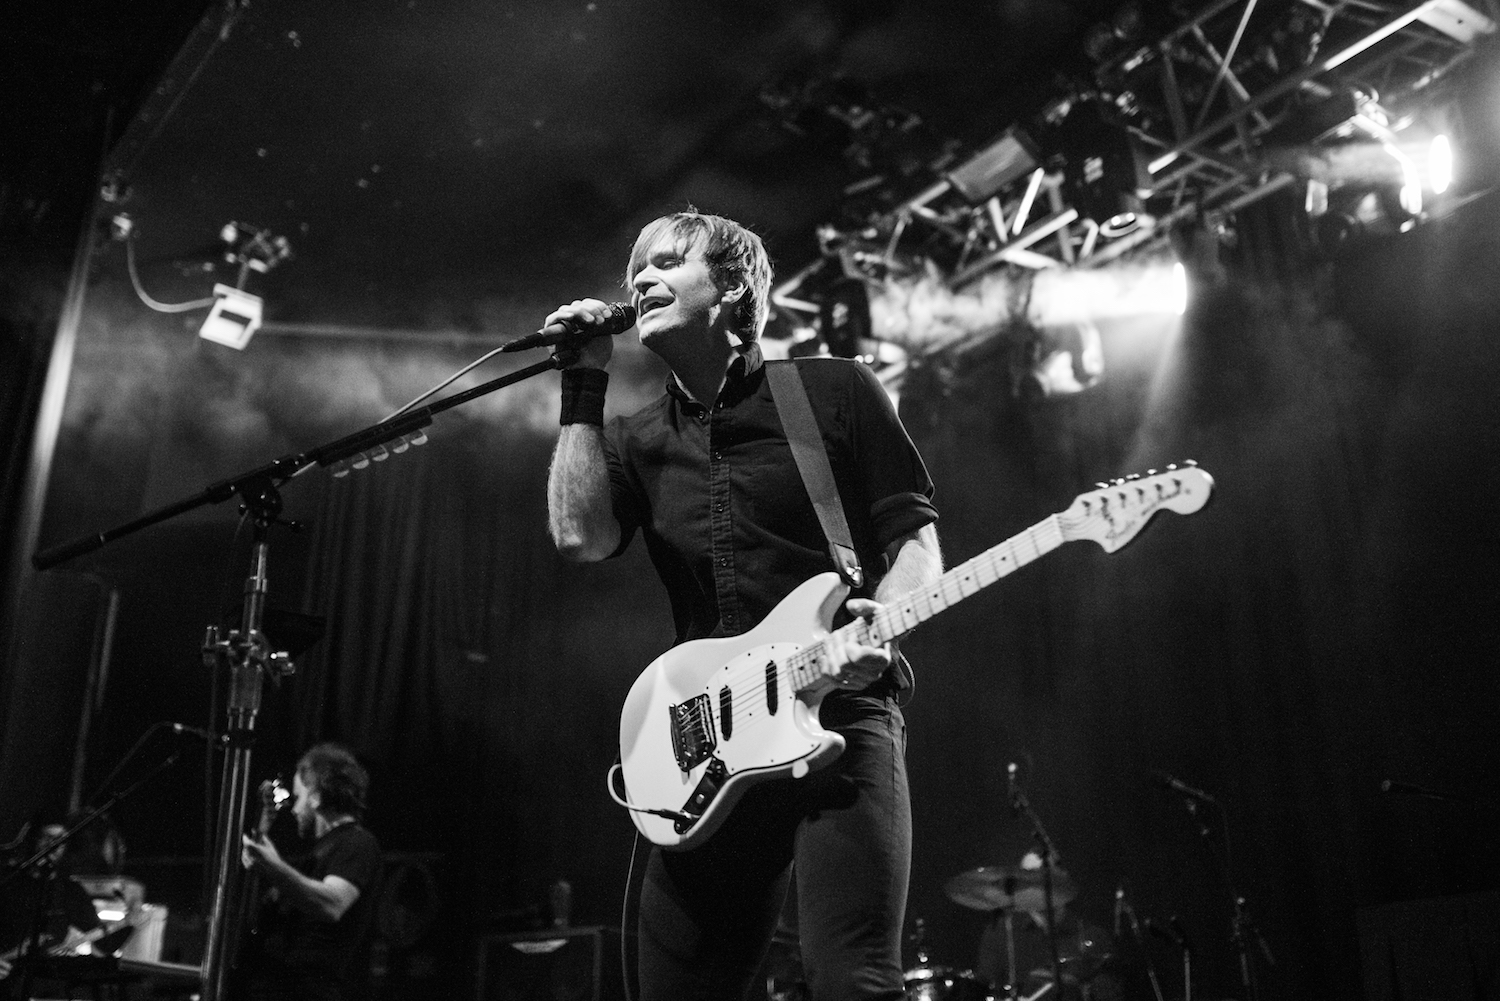 Live Review: Death Cab For Cutie at O2 Academy, Bristol, 30/01/2019